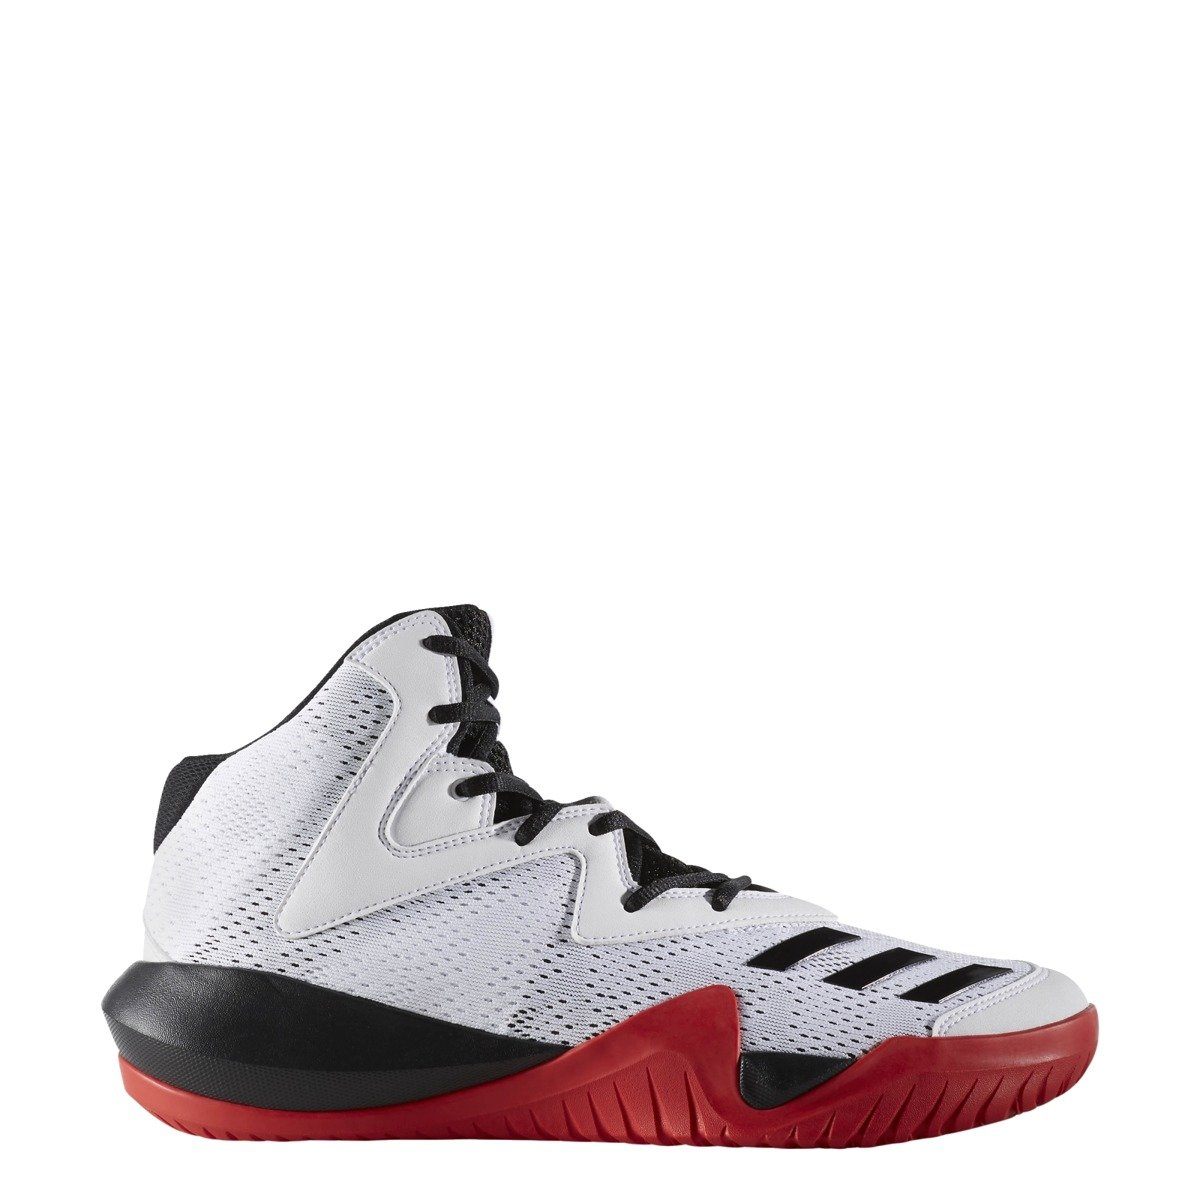 meet f9859 bf481 eng pl adidas next level speed 4 shoes